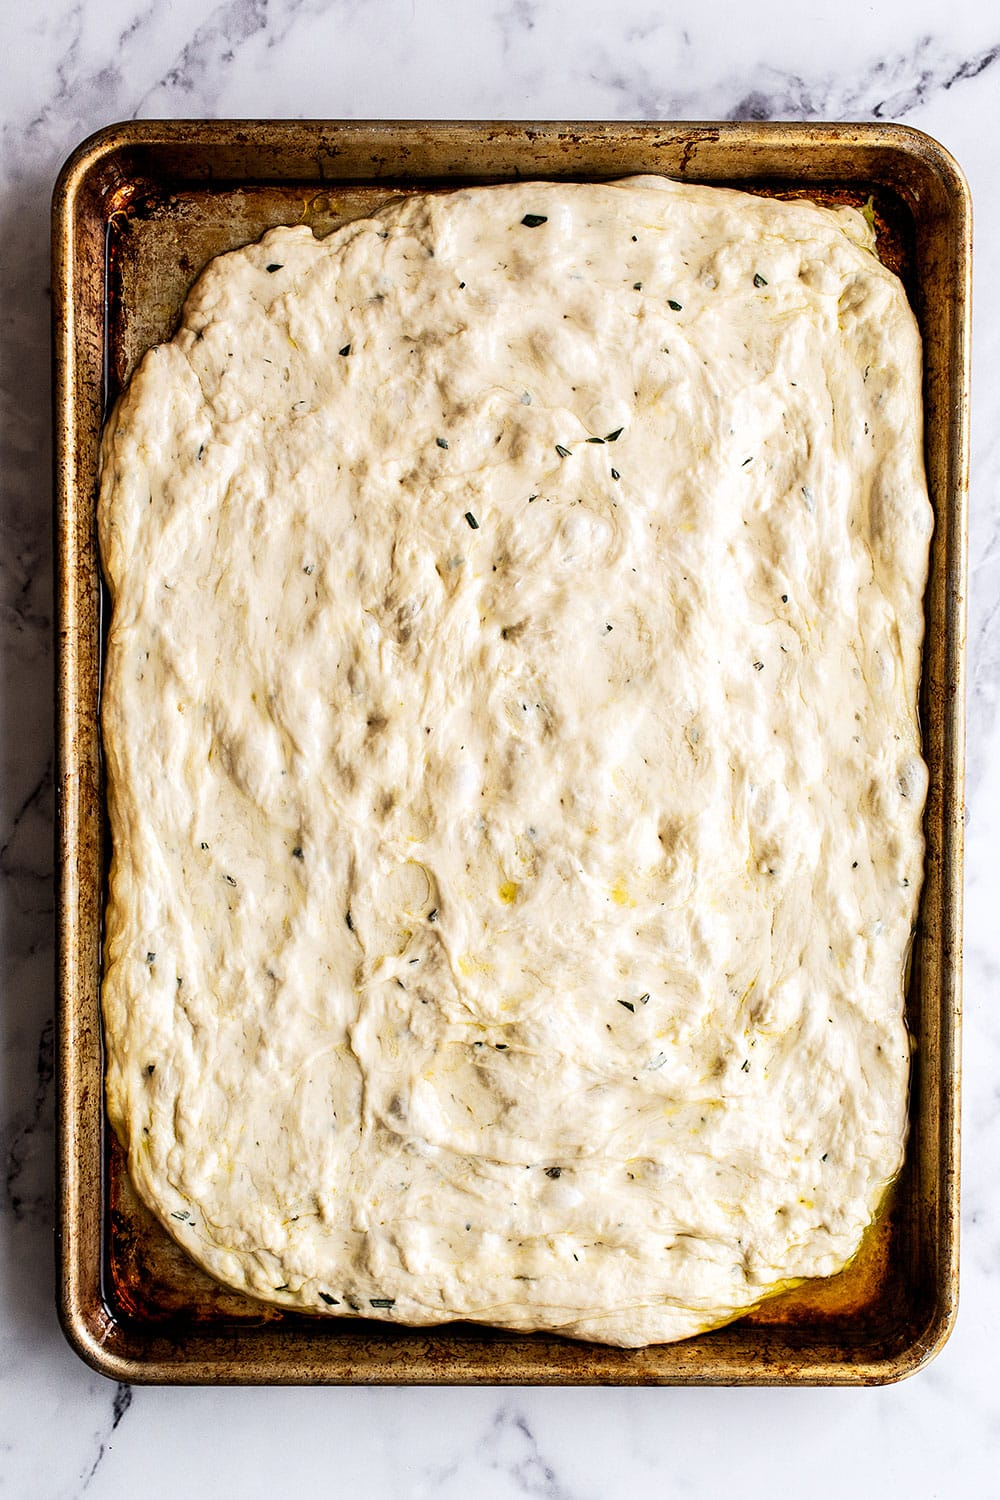 Tray of focaccia dough ready for the oven